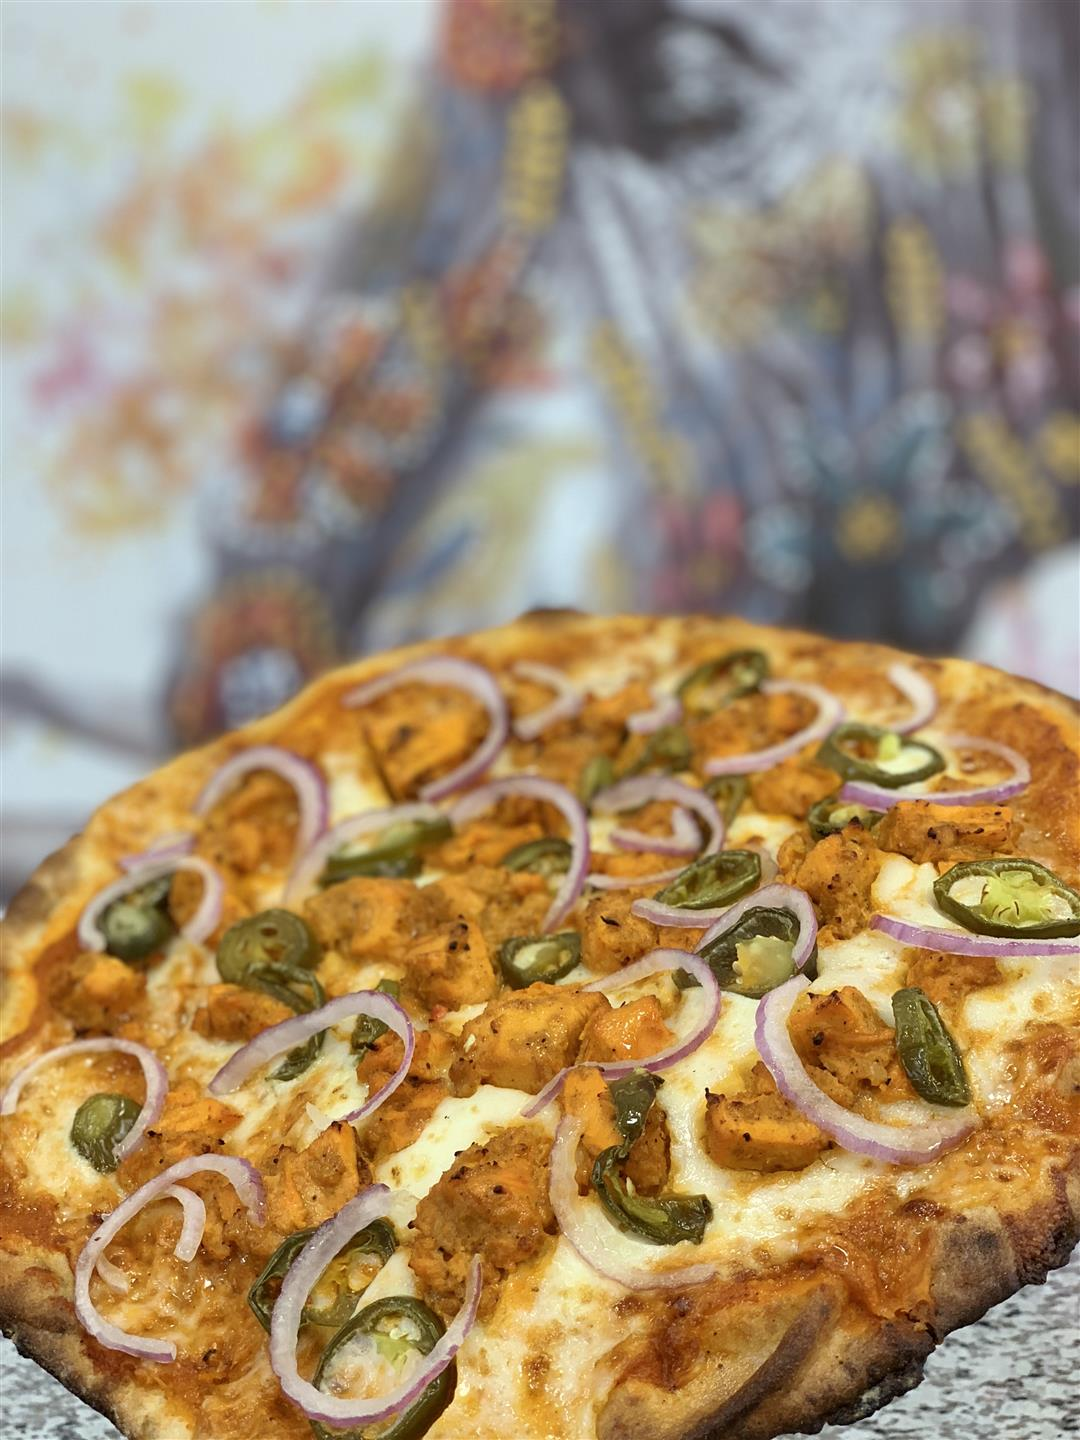 pizza with meat, onions and jalapenos